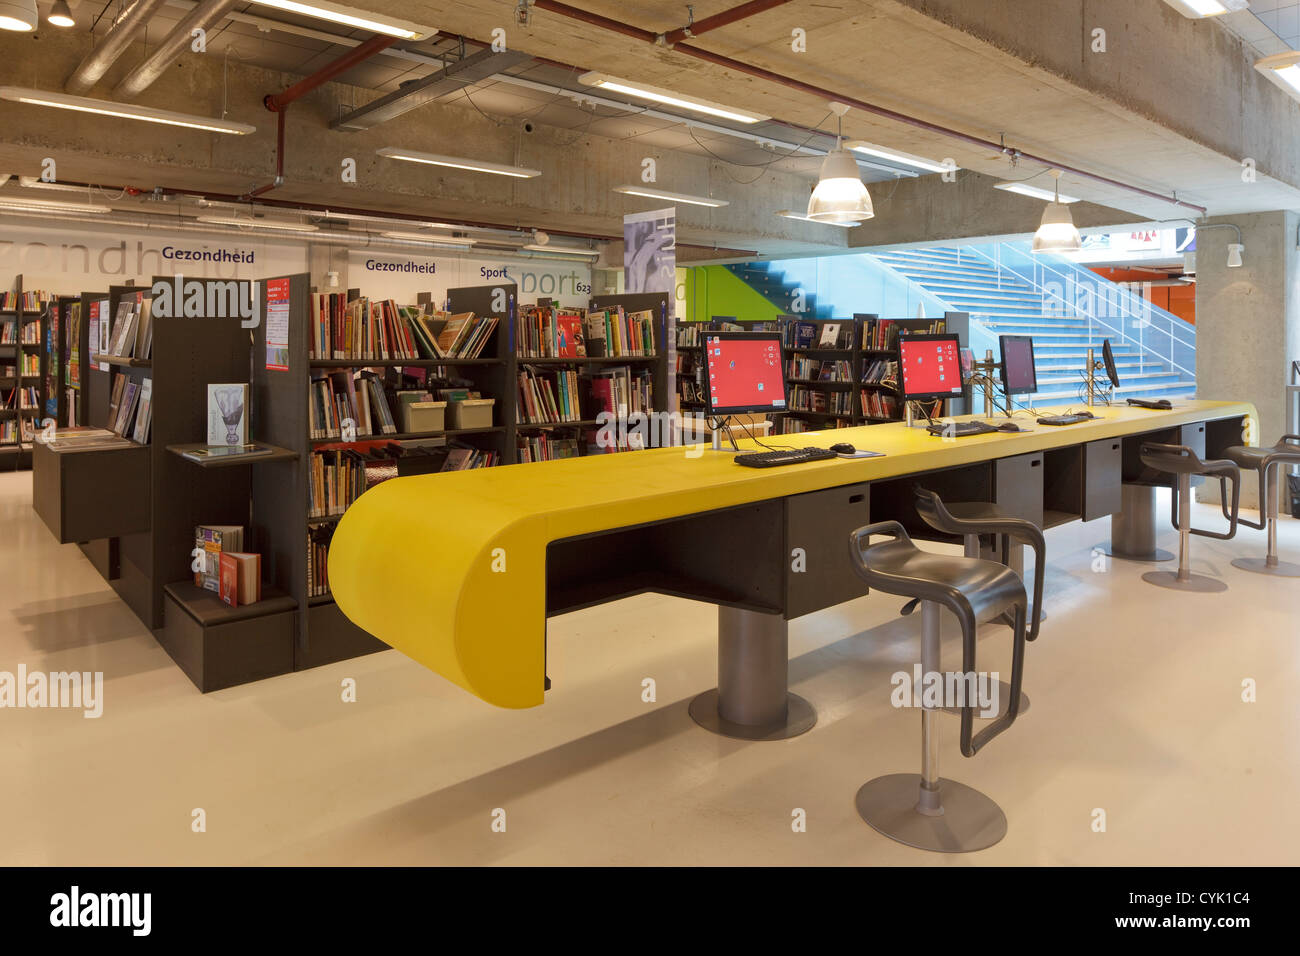 Communal Desk Stock Photos Communal Desk Stock Images Alamy - Communal work table